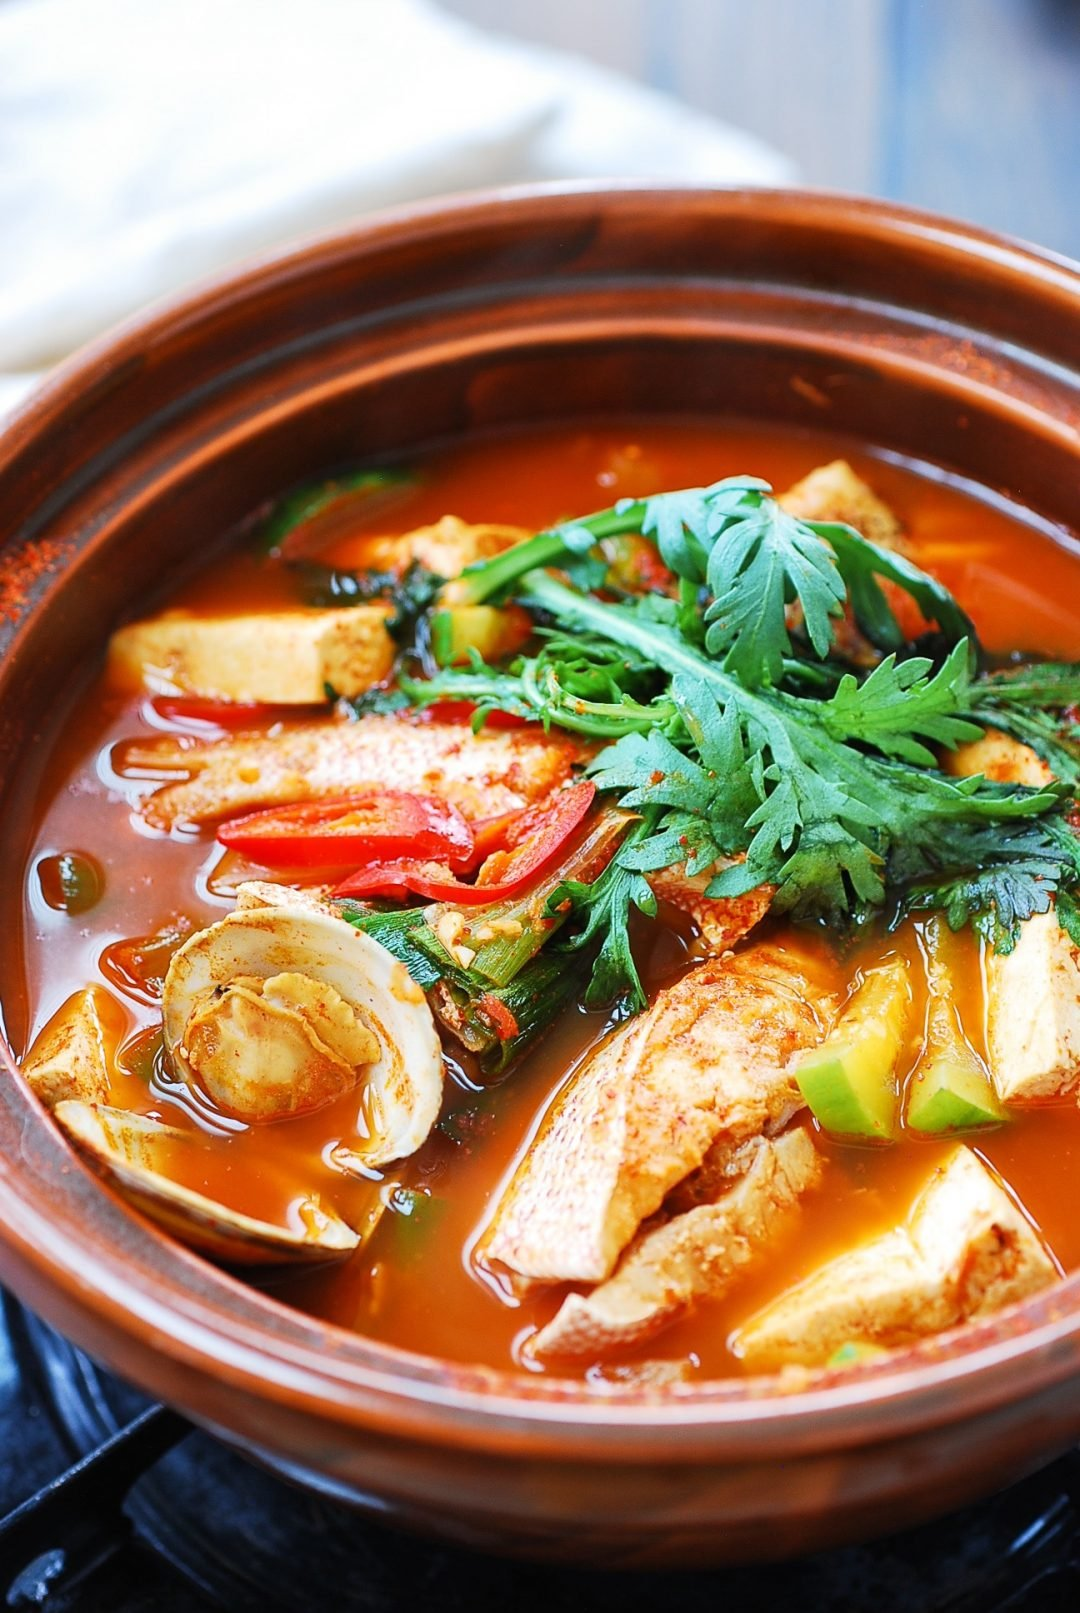 DSC 2723 1 e1613456552317 - Domi Maeuntang (Spicy Fish Stew with Red Snapper)